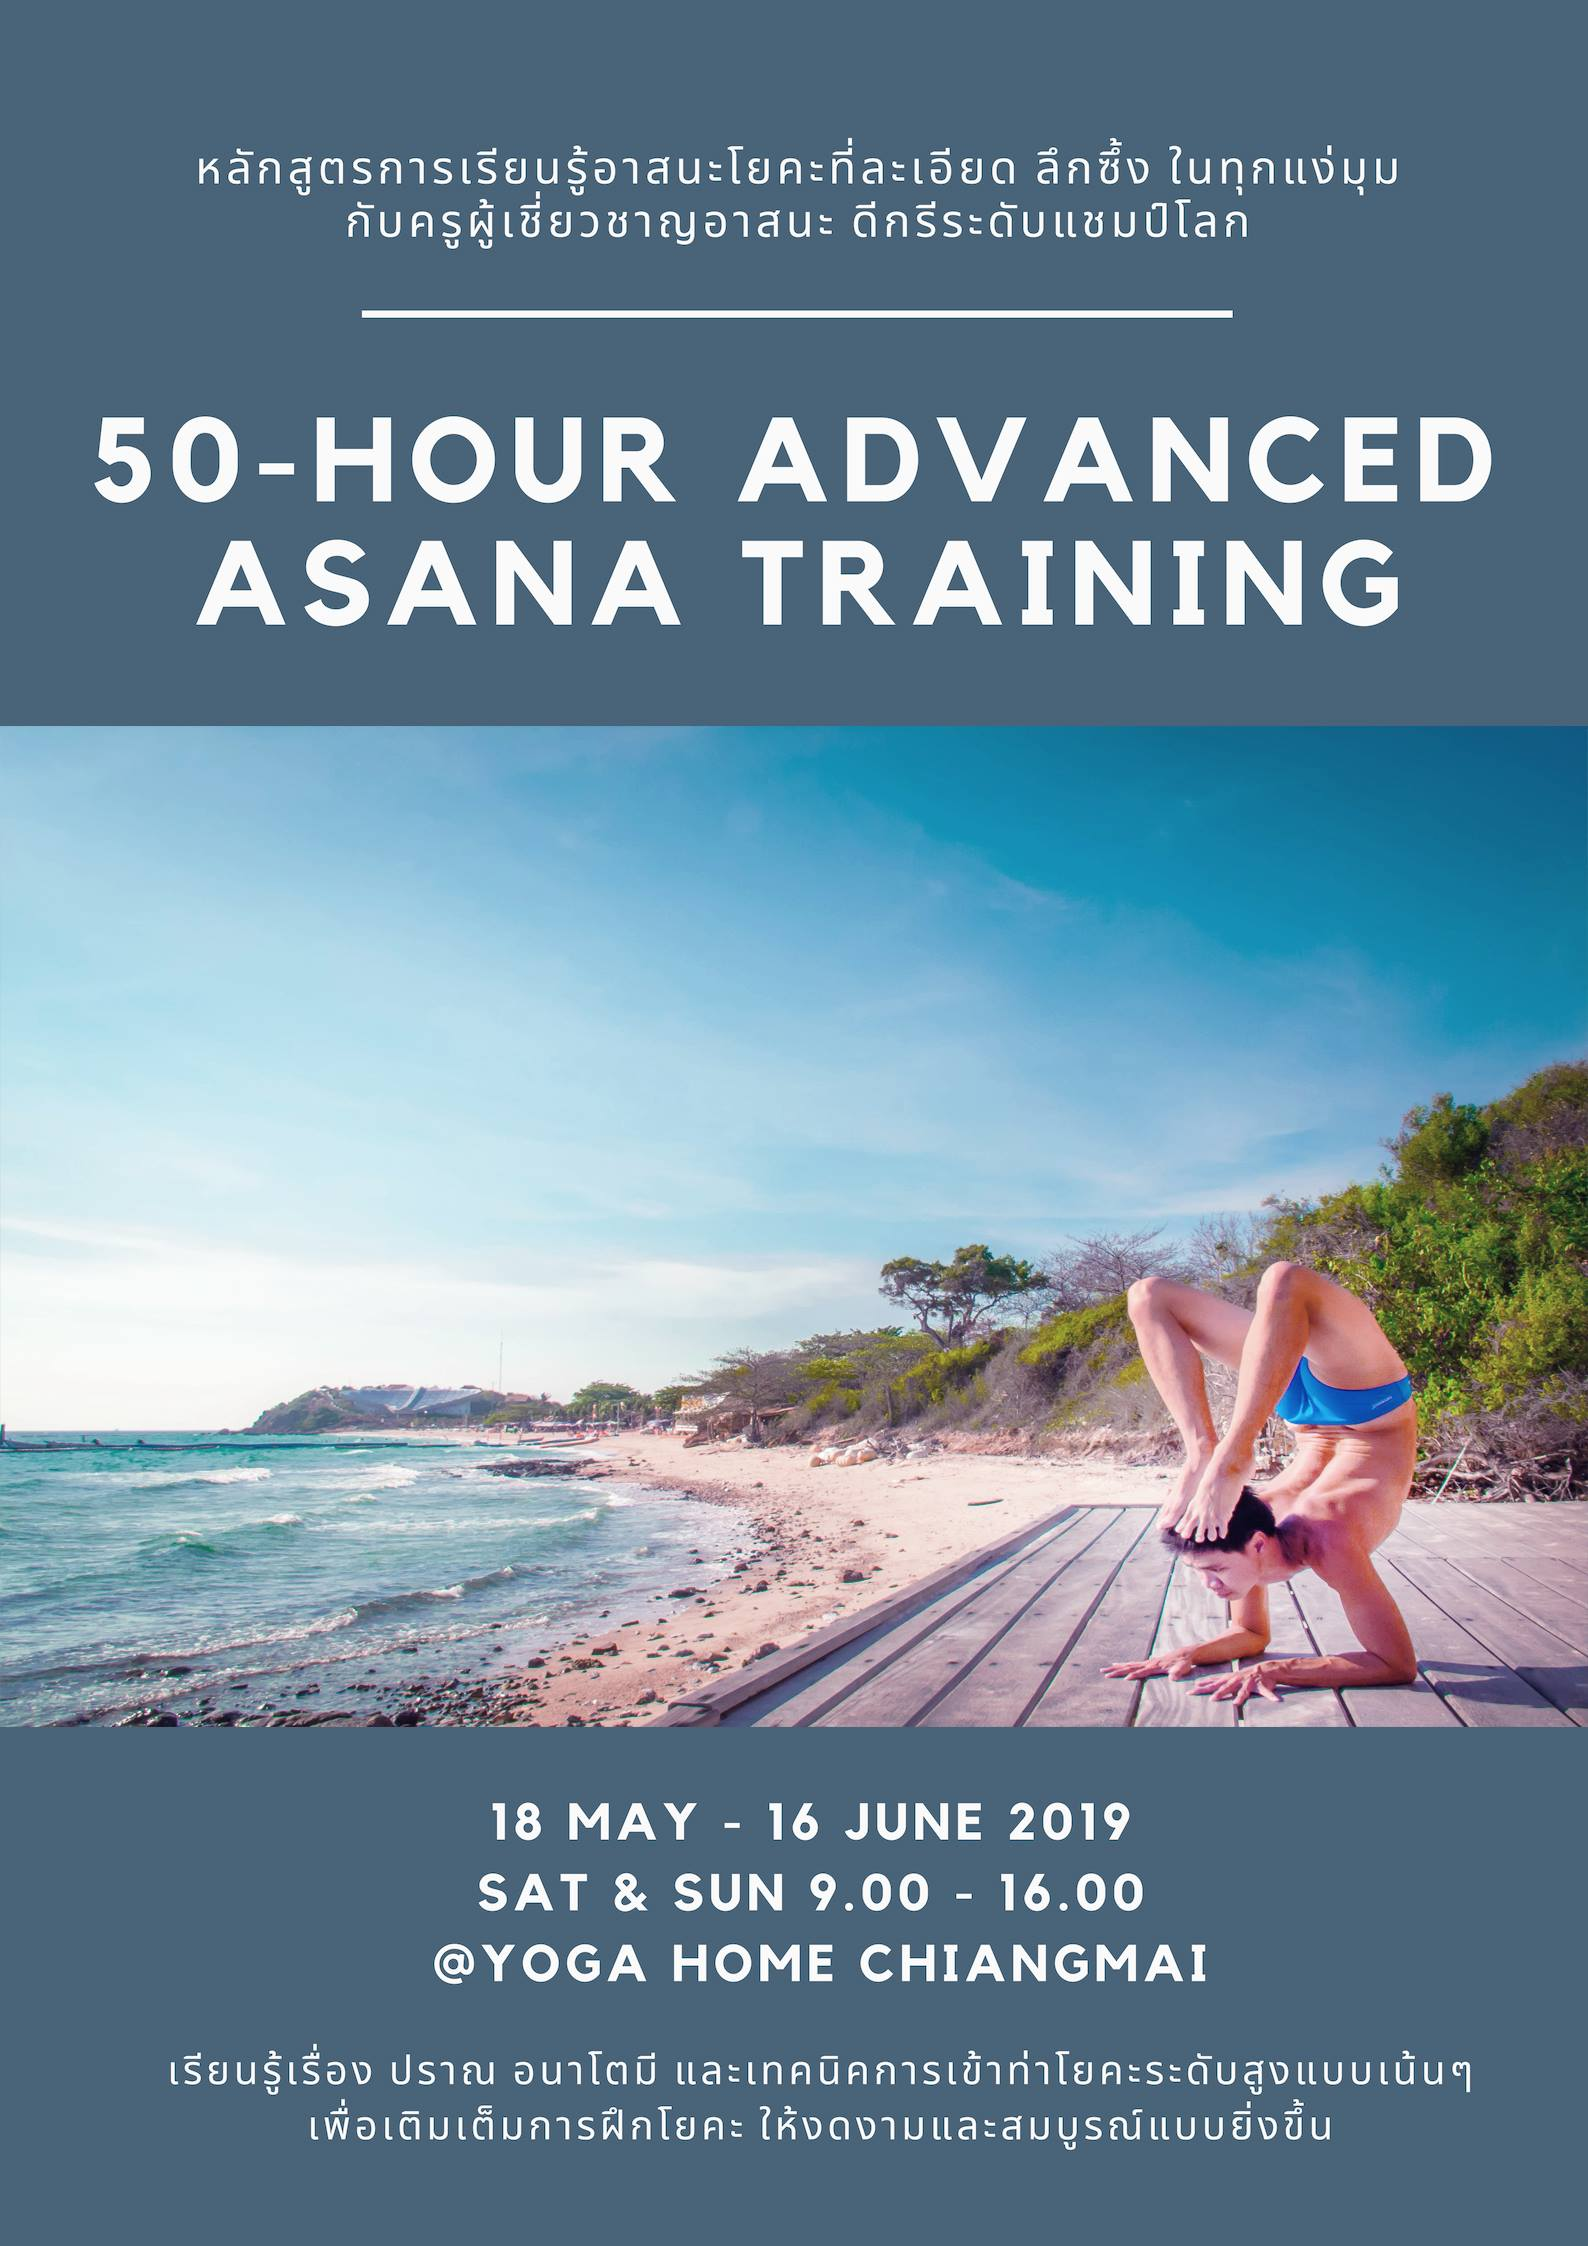 Advanced Asana Training